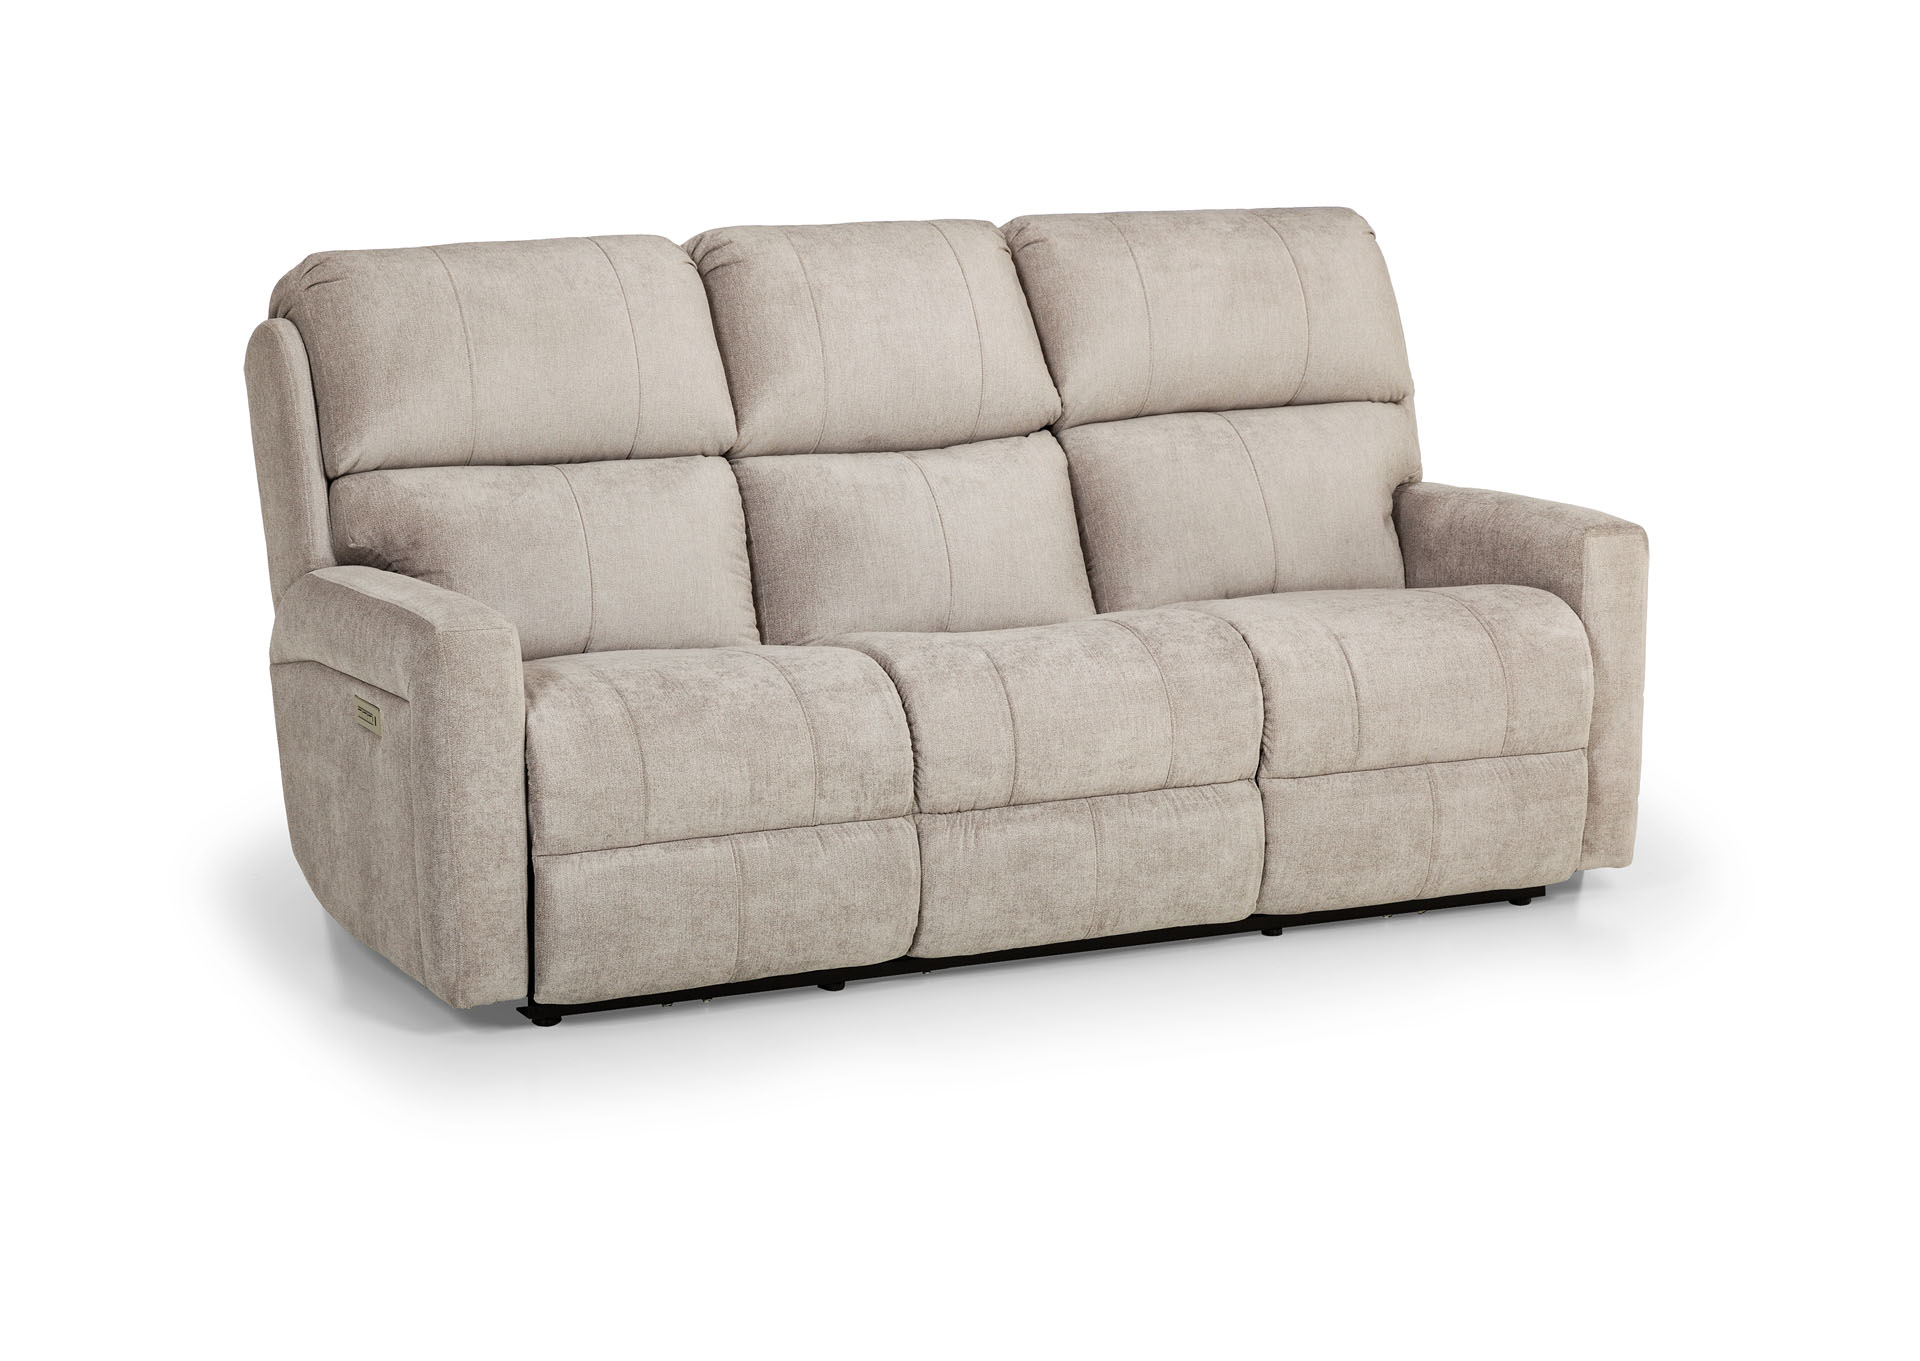 Polo Club Power Sofa,Stanton